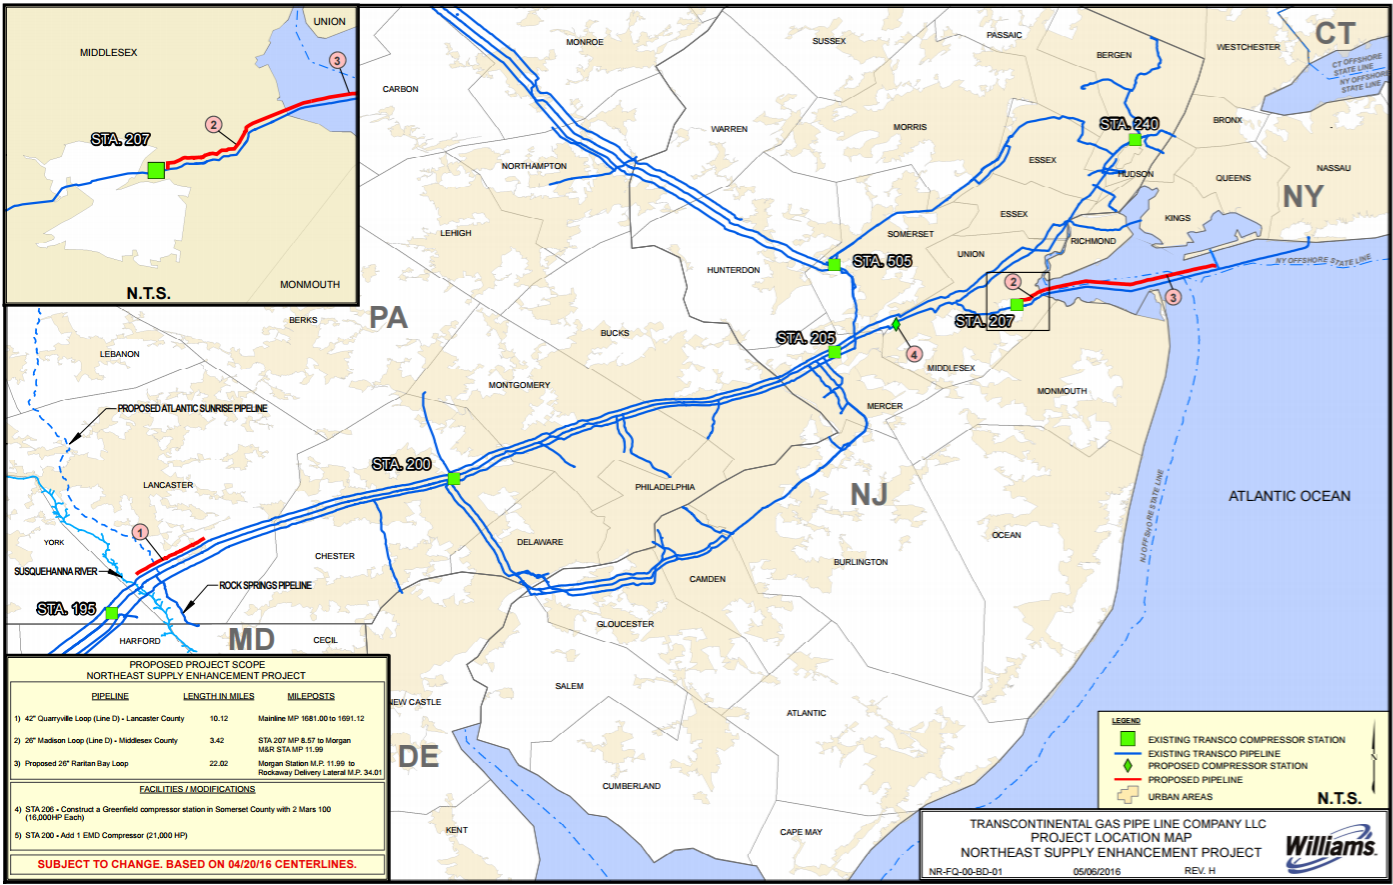 Transco Northeast Supply Enhanacement Project map